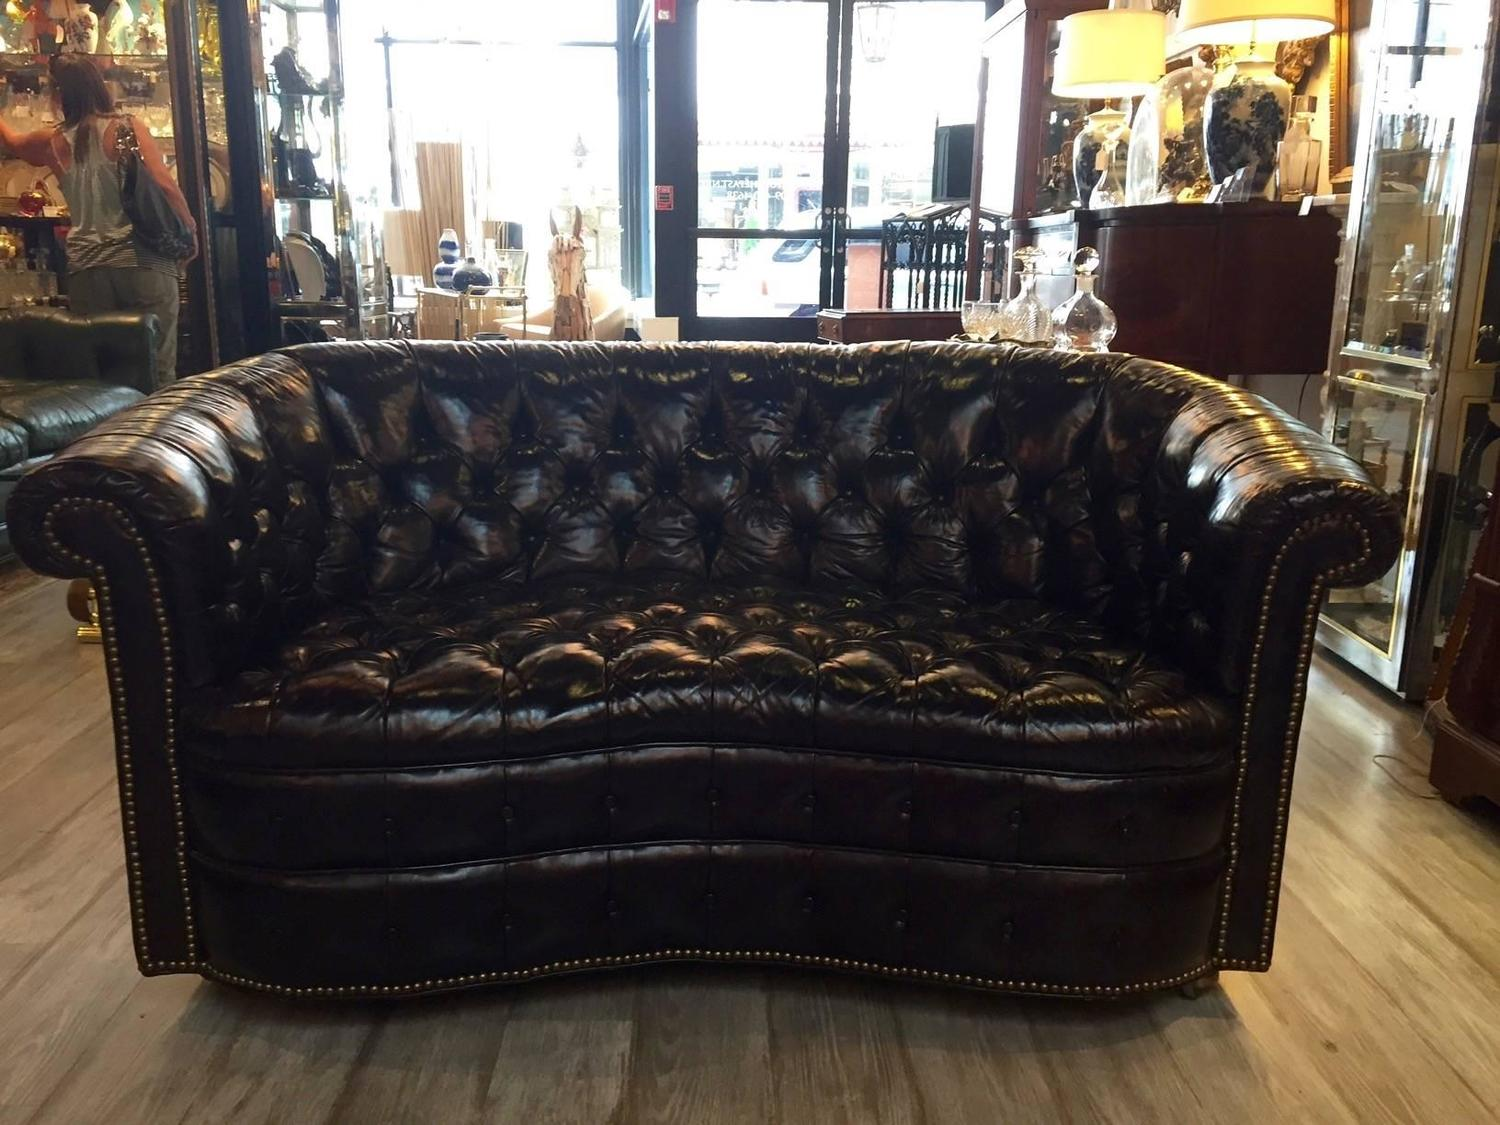 Dark Tobacco Brown Curved Tufted Leather Chesterfield Sofa Loveseat At 1stdibs